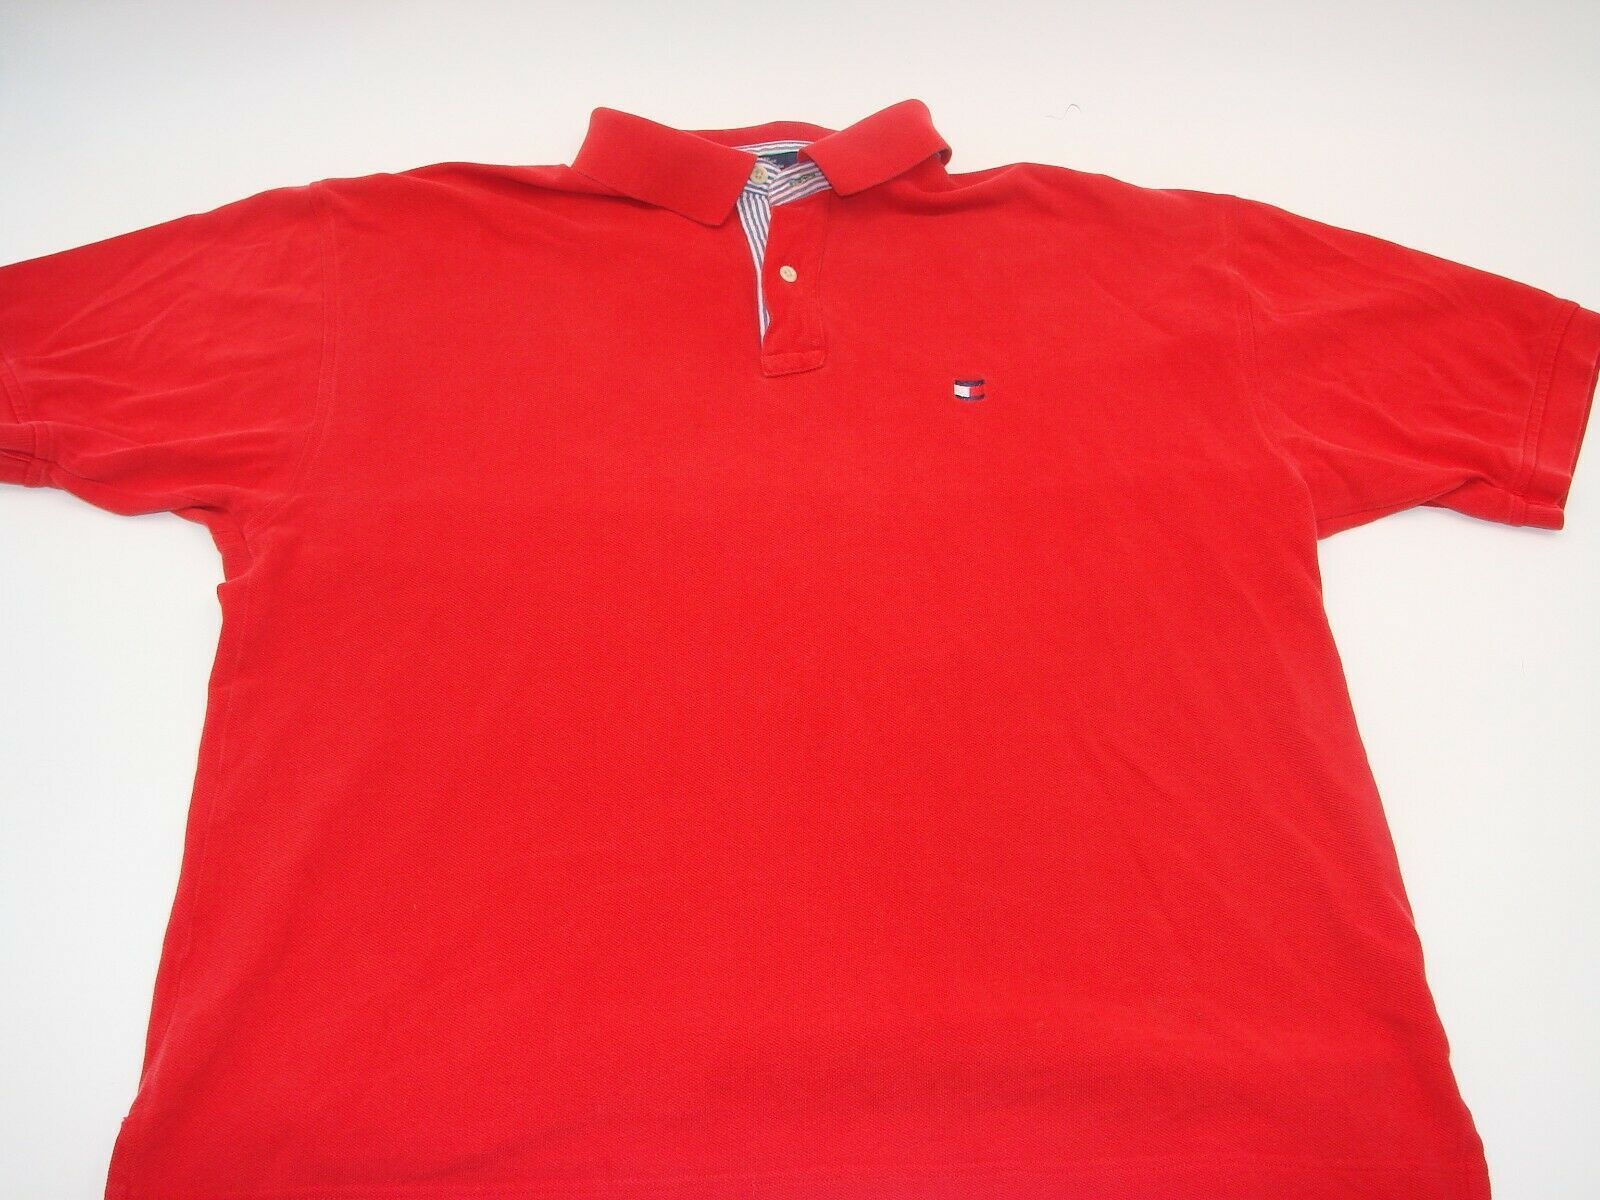 VINTAGE Tommy Hilfiger Polo Shirt Adult Extra Large XL Red Flag Rugby Men's 90's - $14.64